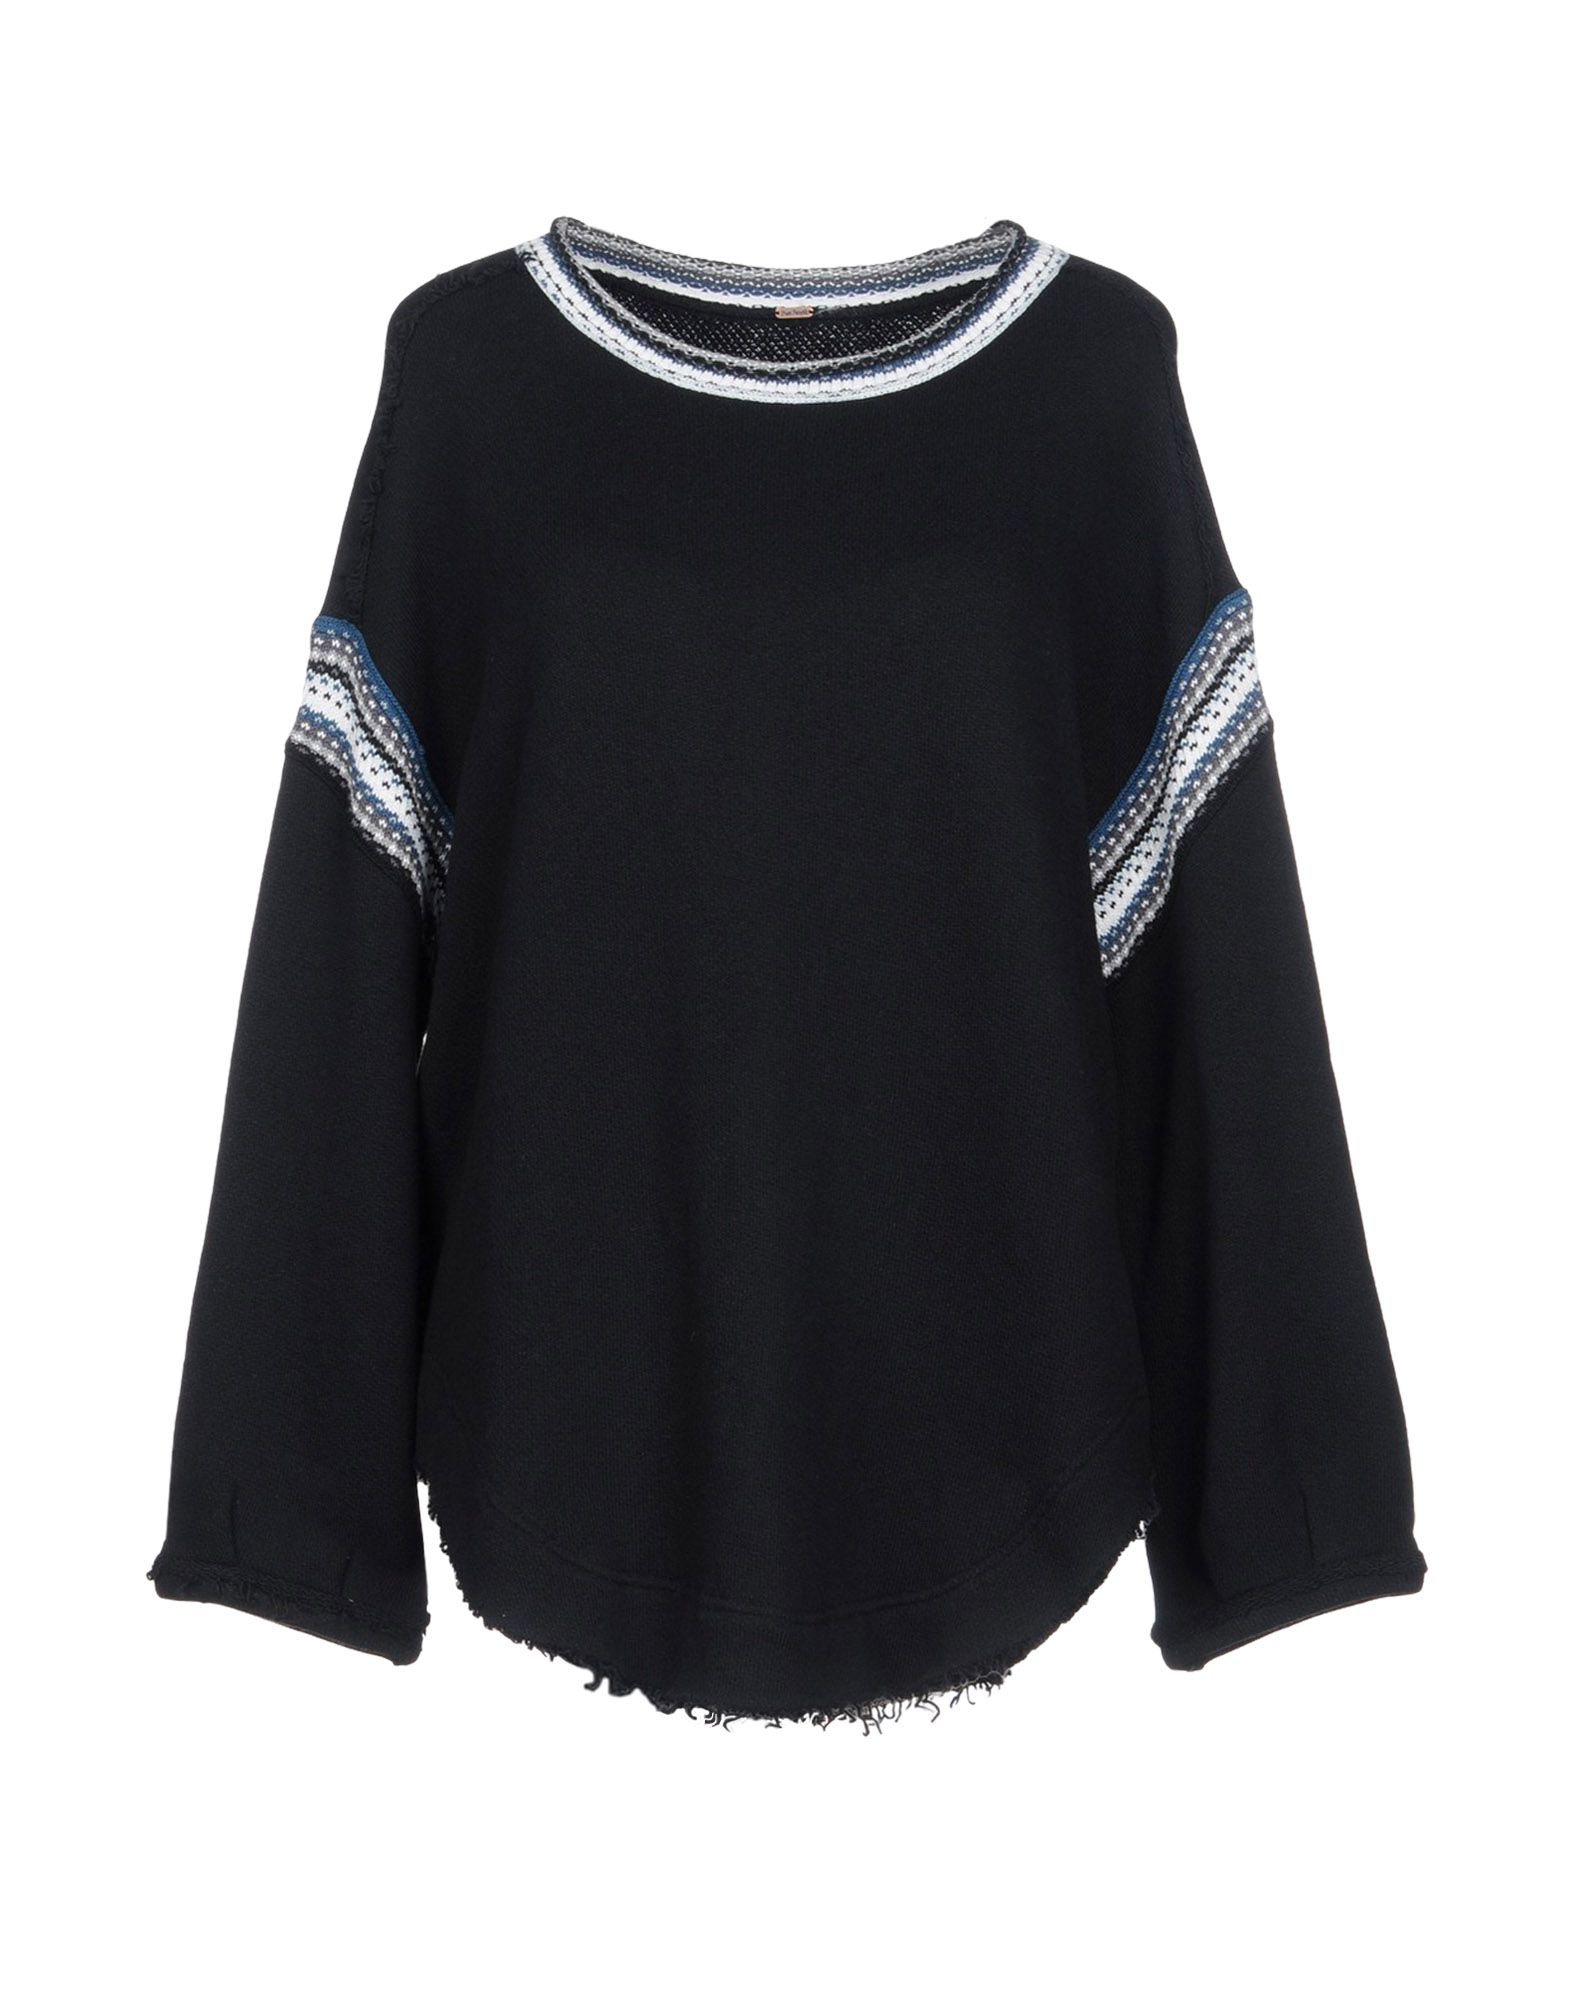 Felpa Free People Donna - Acquista online su Cmxb7oF2